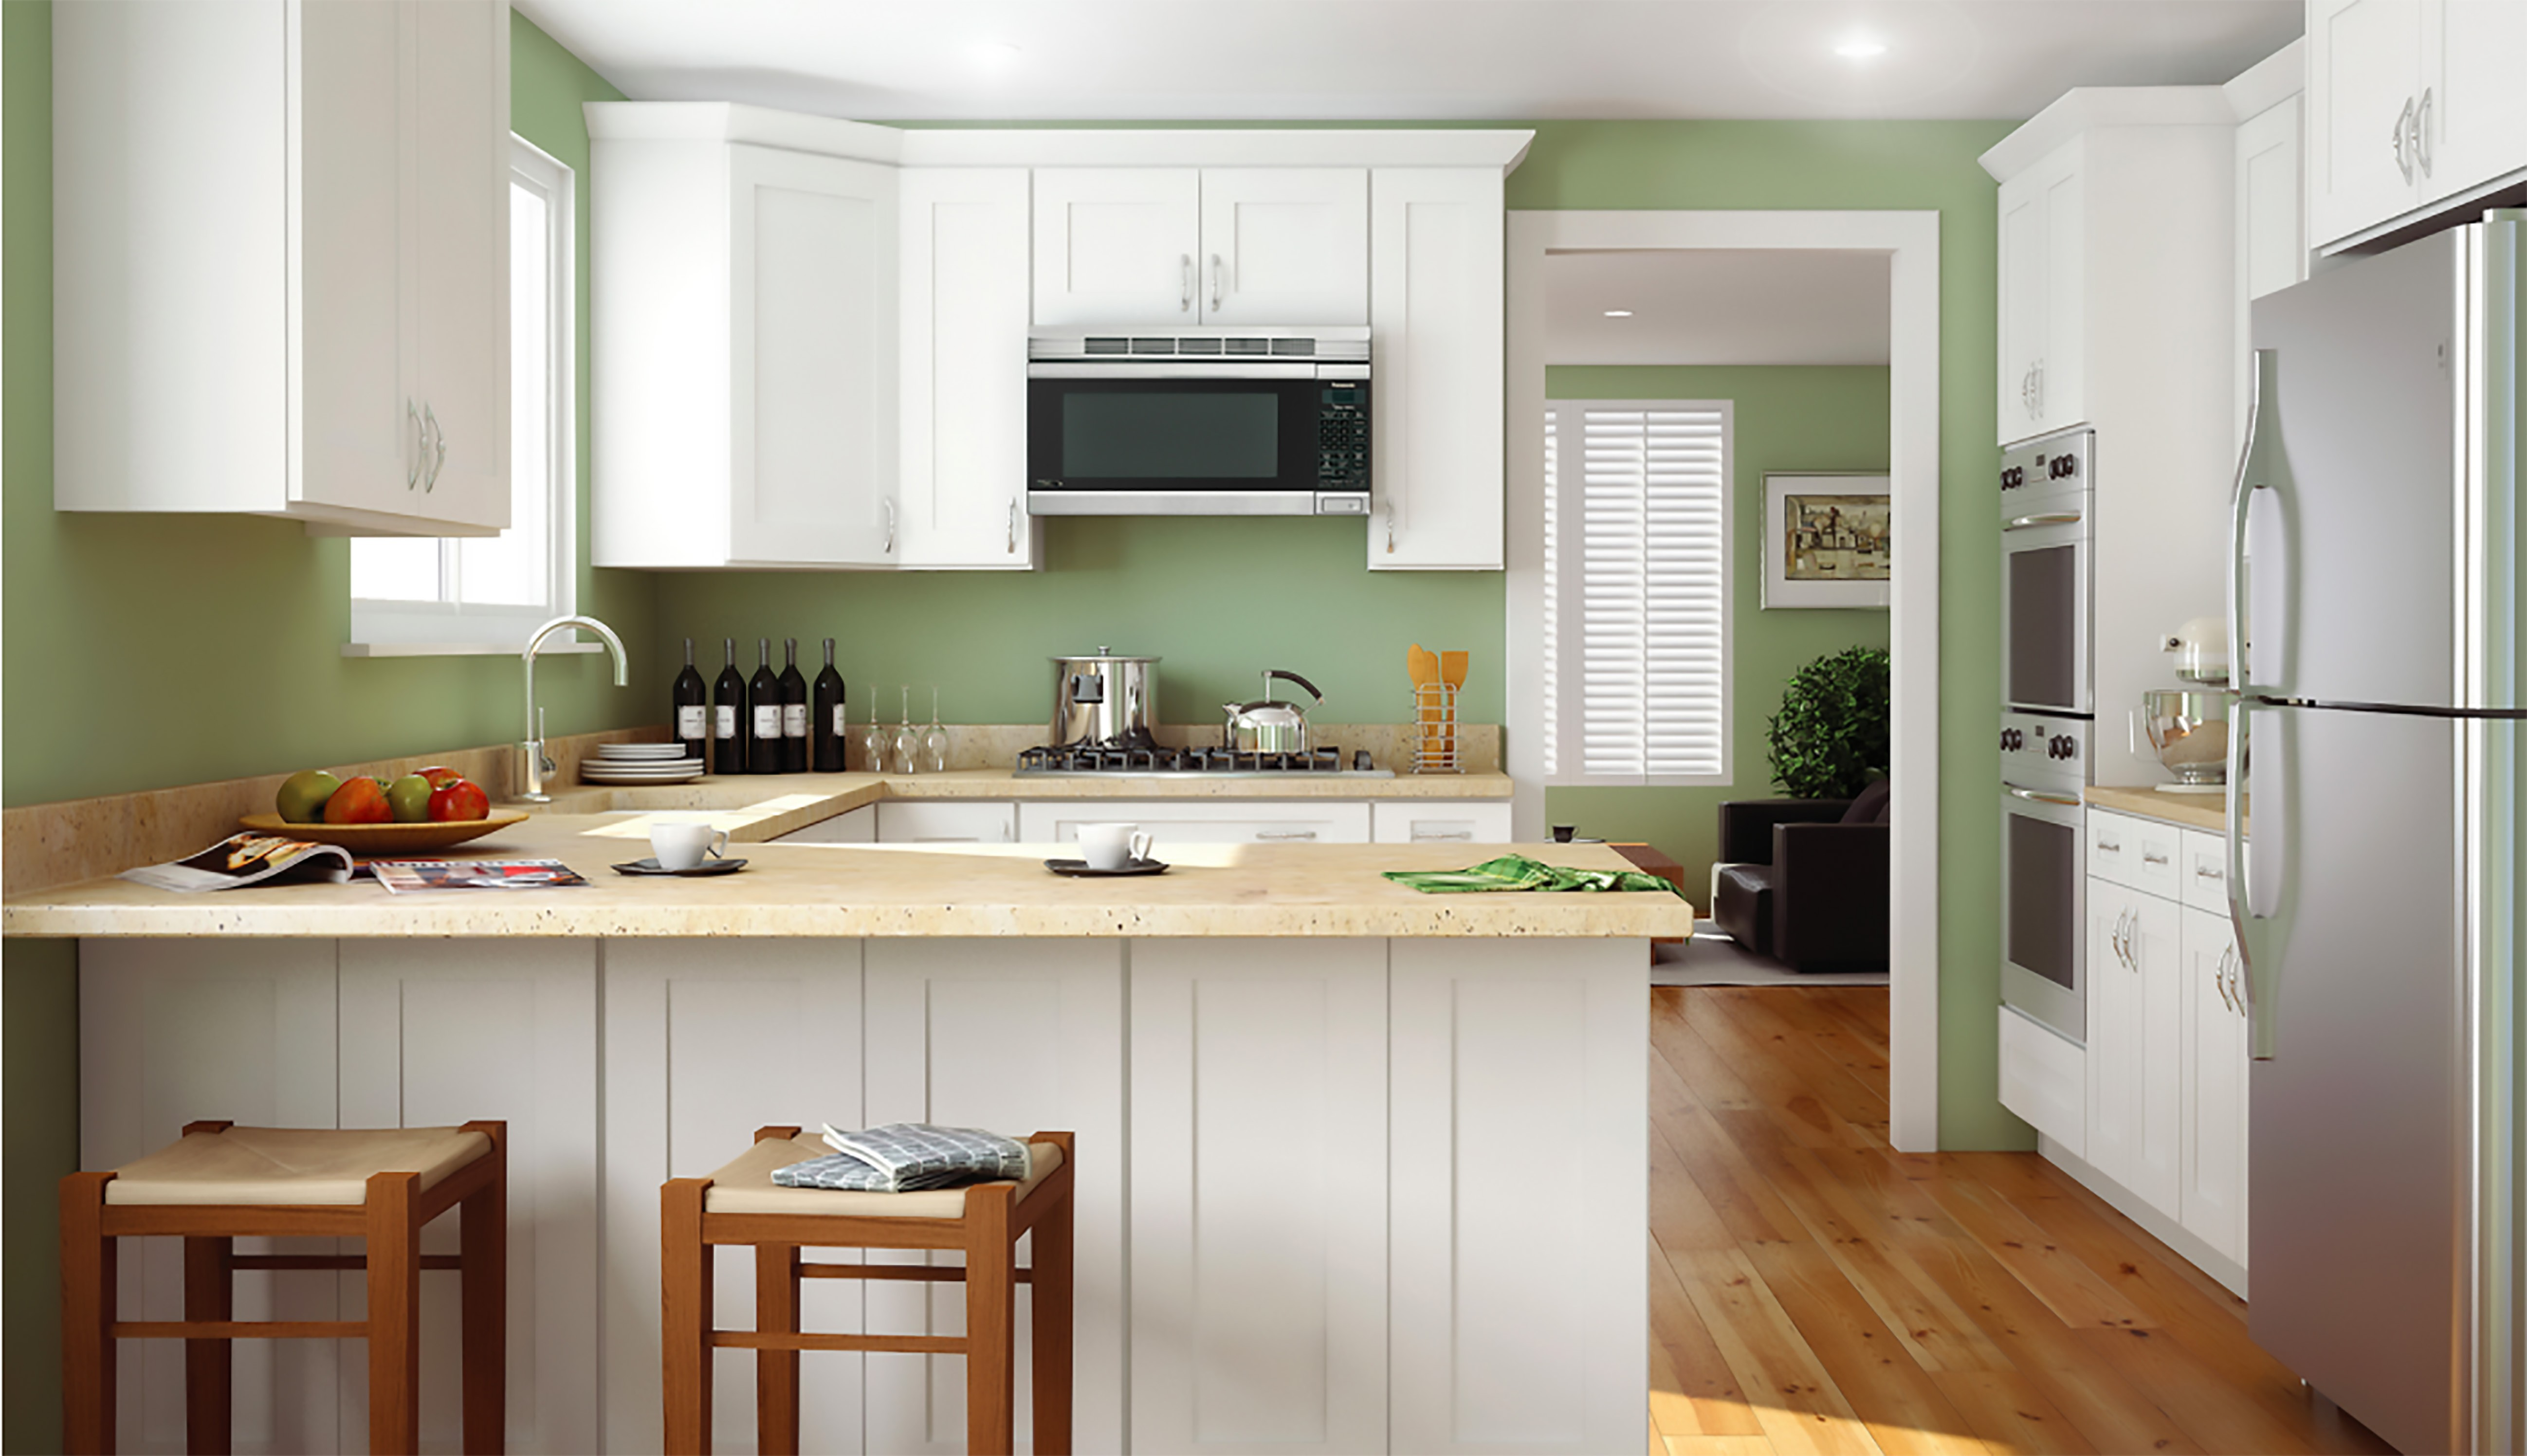 tuscany white shaker cabinet - sunco kitchen collection - cabinets - online catalog